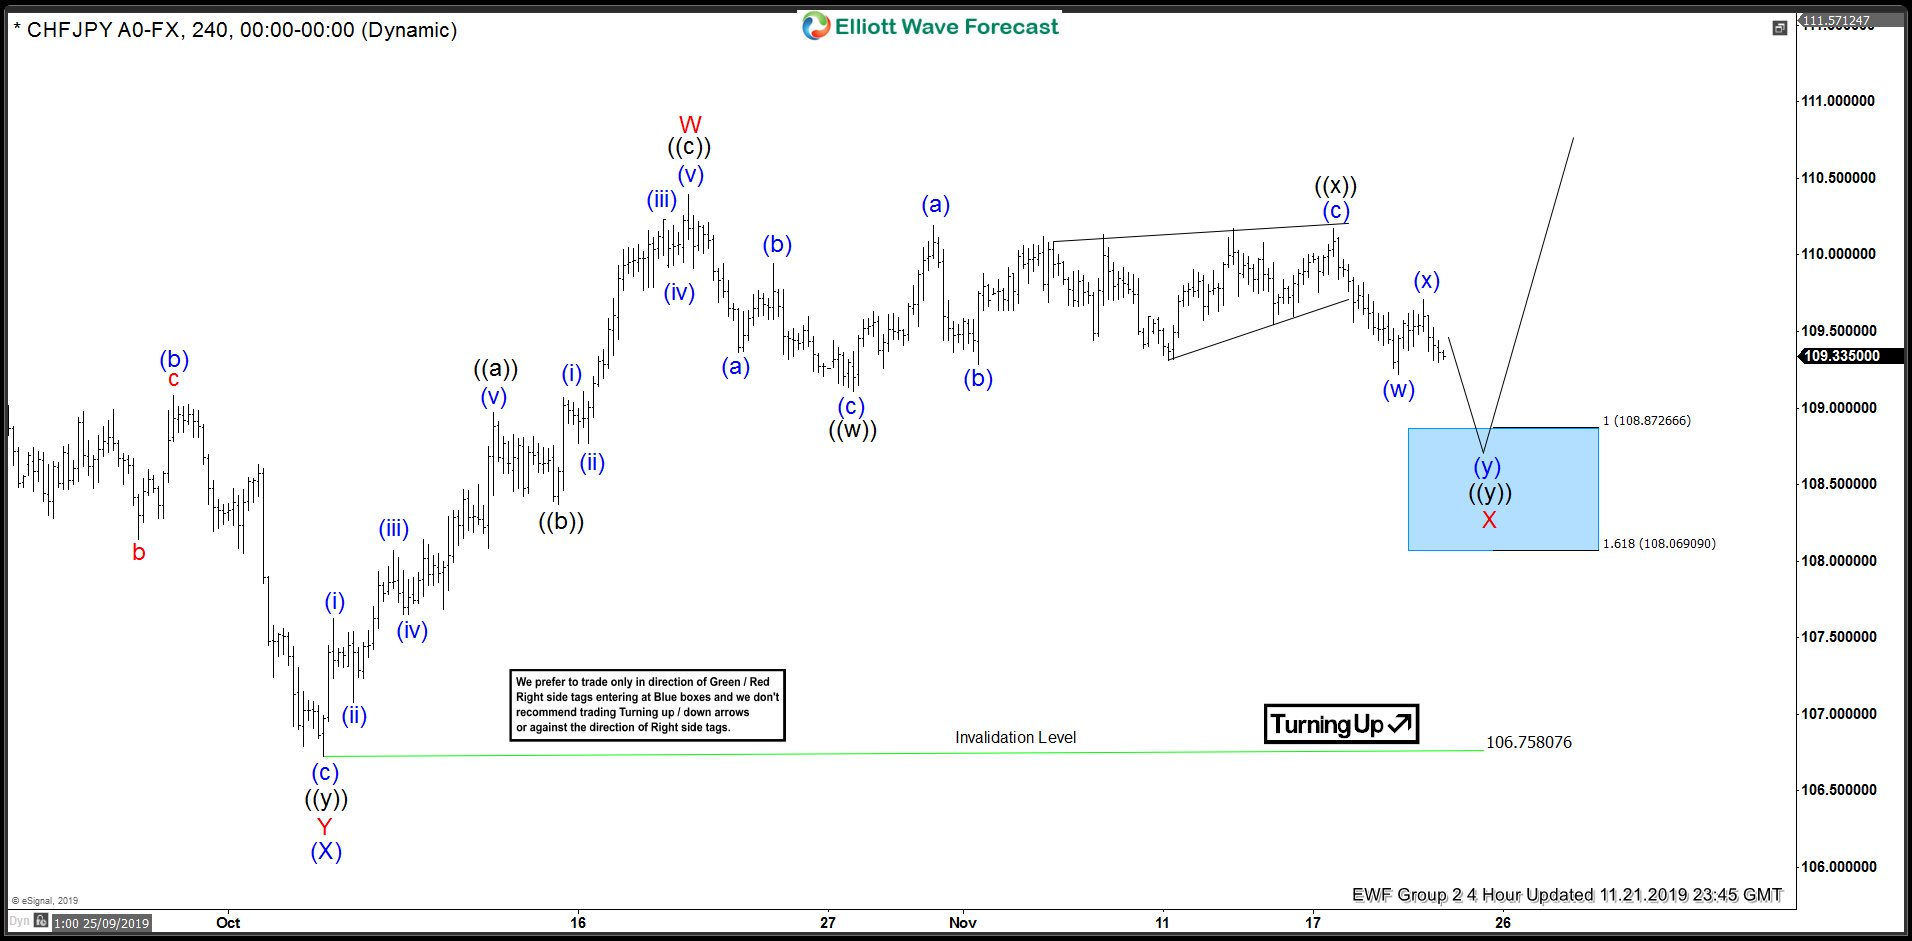 CHFJPY Calling the Rally After Double Three Elliott Wave Correction